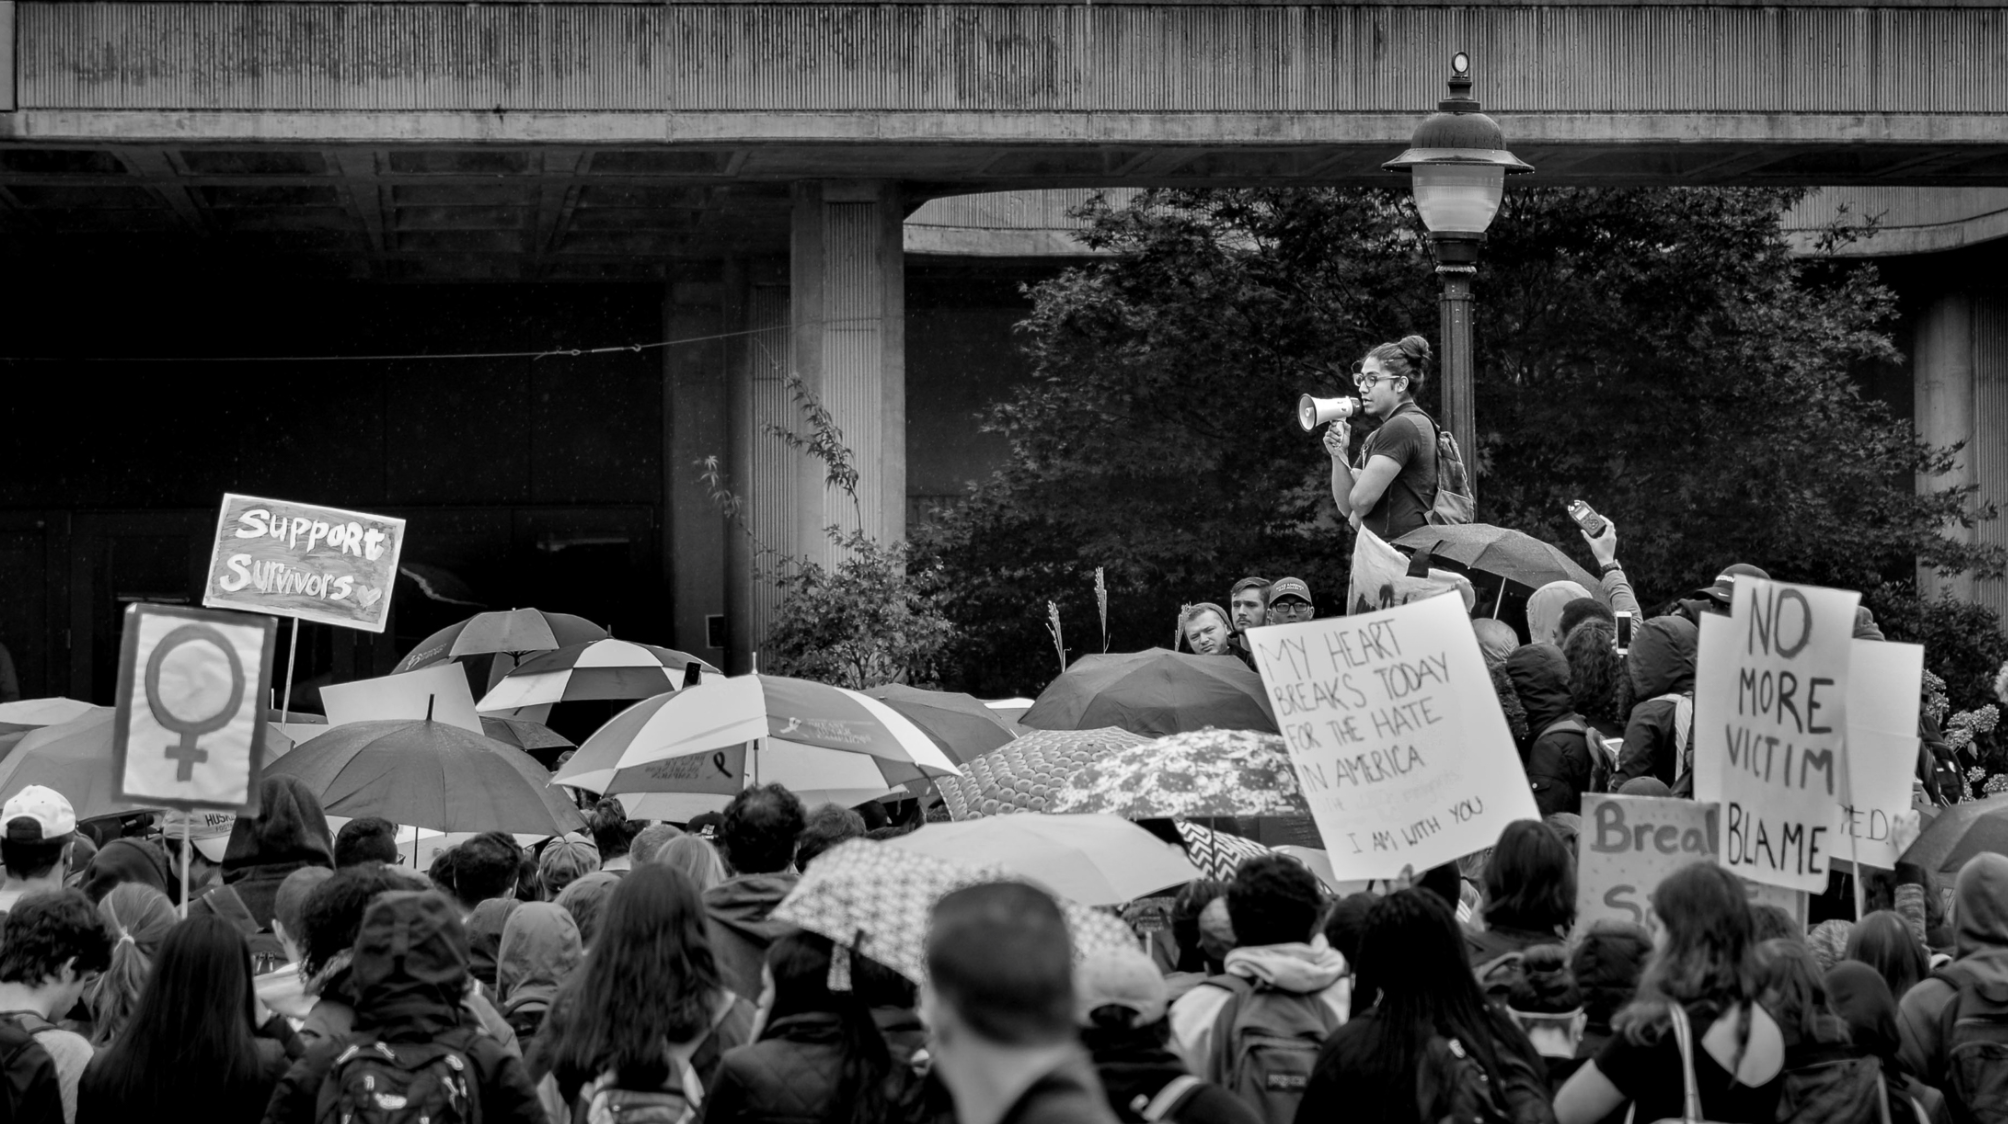 Eric protesting at a rally.